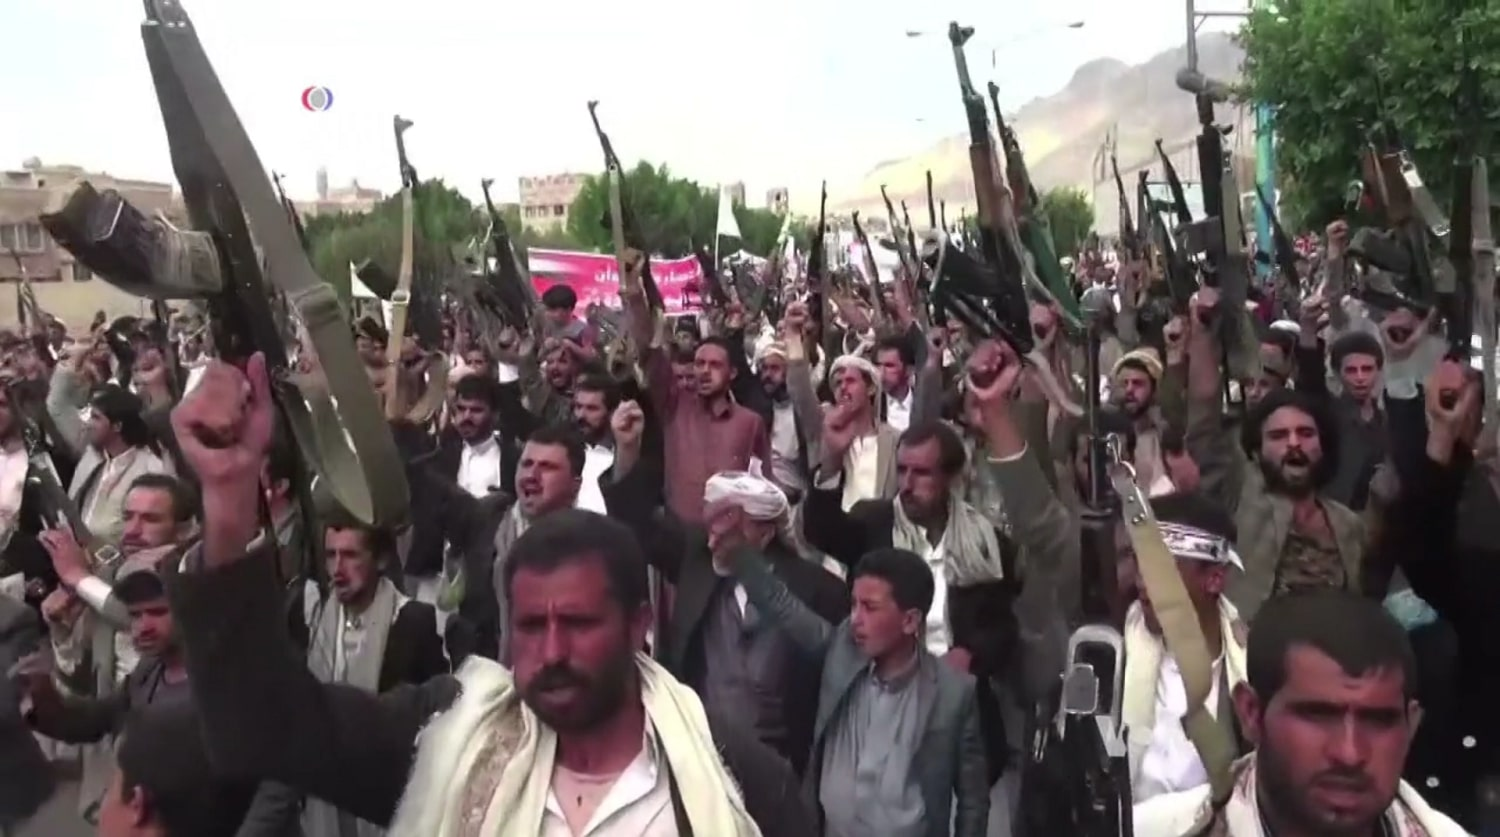 Houthi rebels protesting the airstrike in Sana